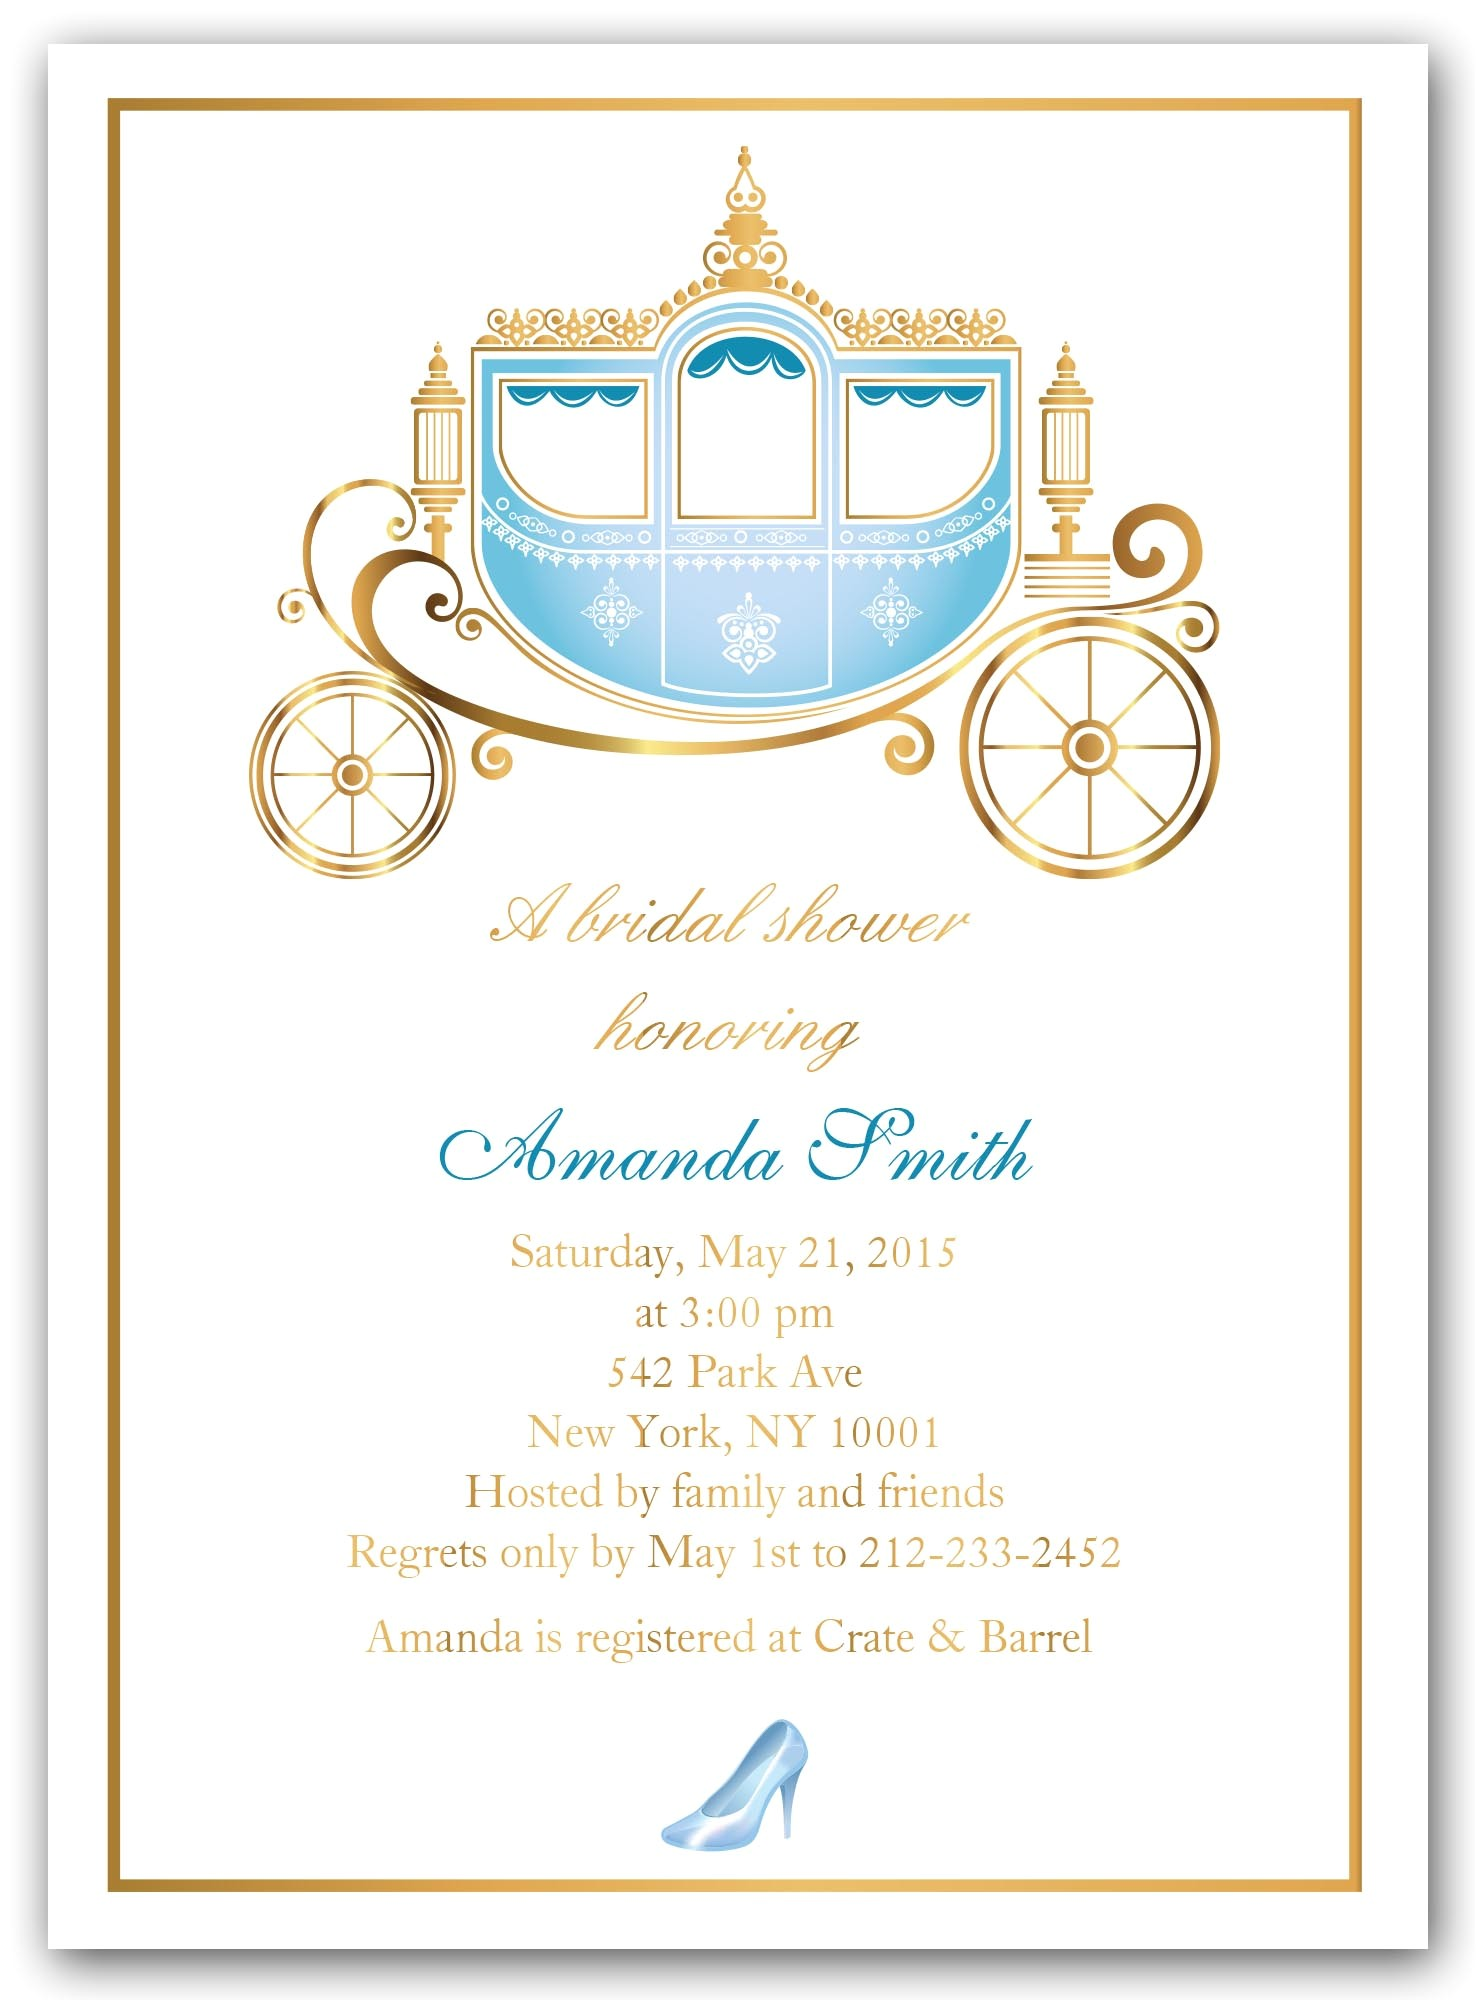 Cinderella themed Bridal Shower Invitations Bridal Shower Invitations Bridal Shower Invitations